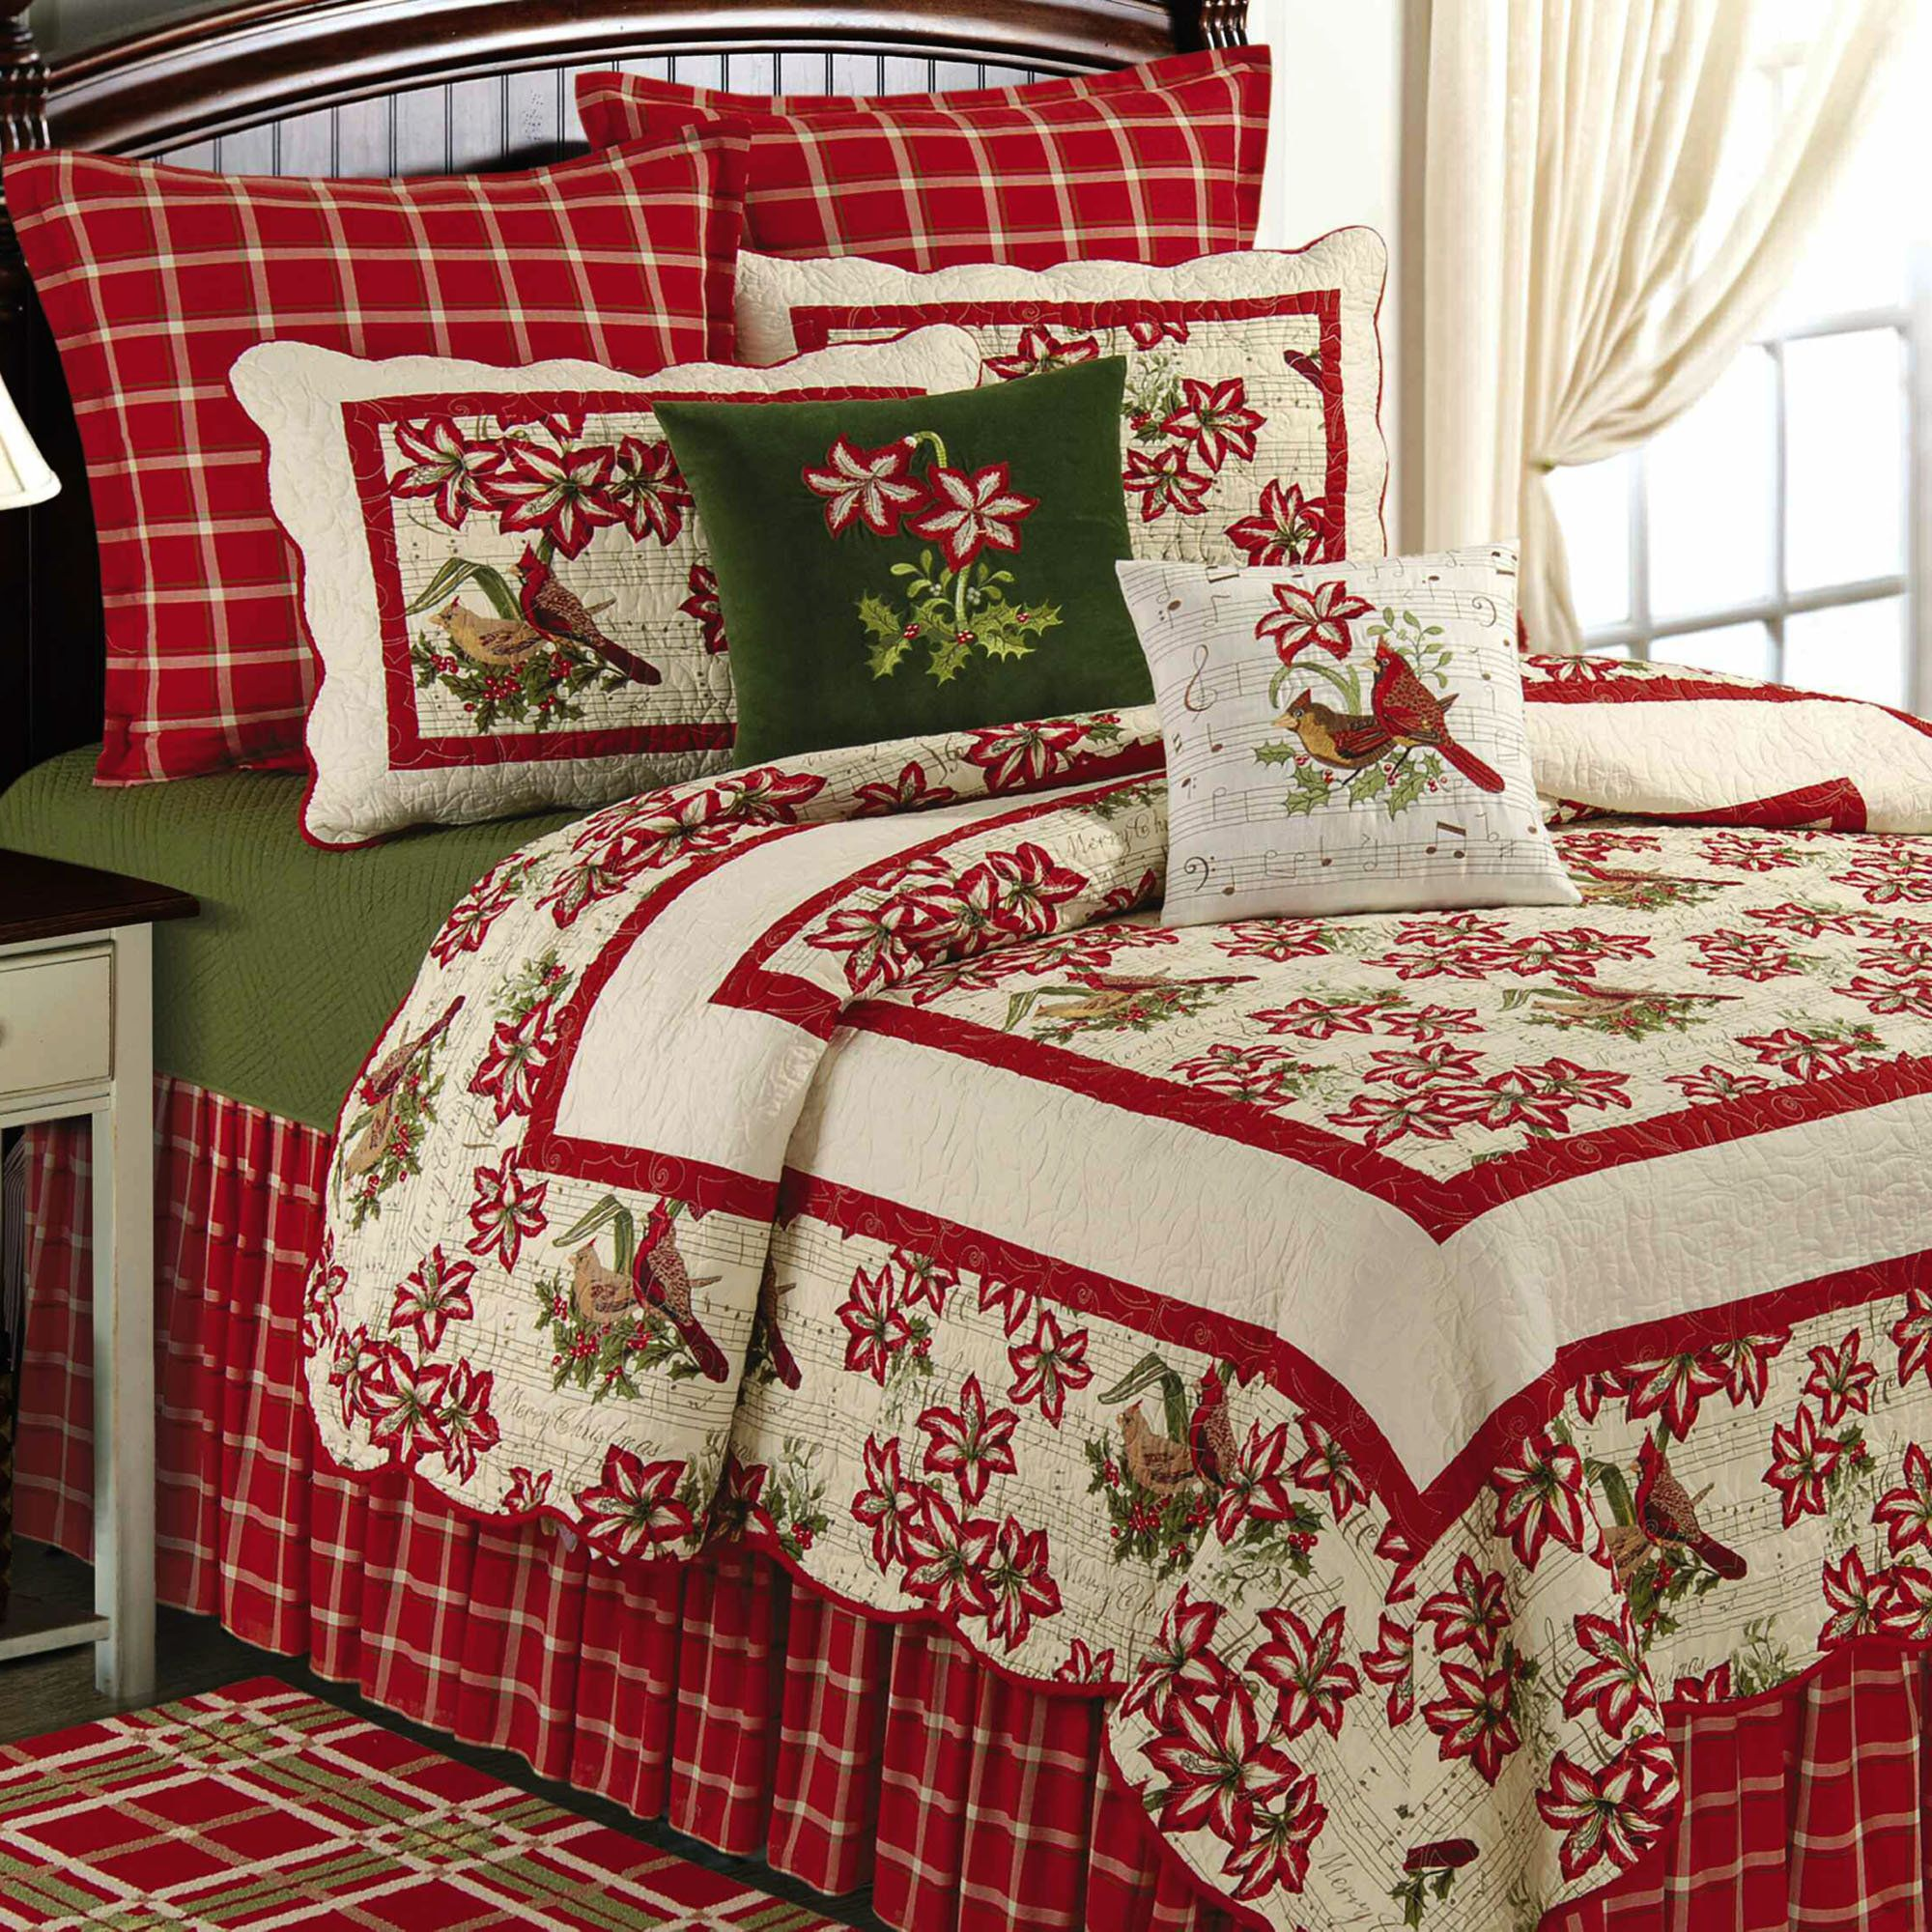 a to bedding the your rustic white black this accent red with plaid addition features for collection holly quilt and bedroom